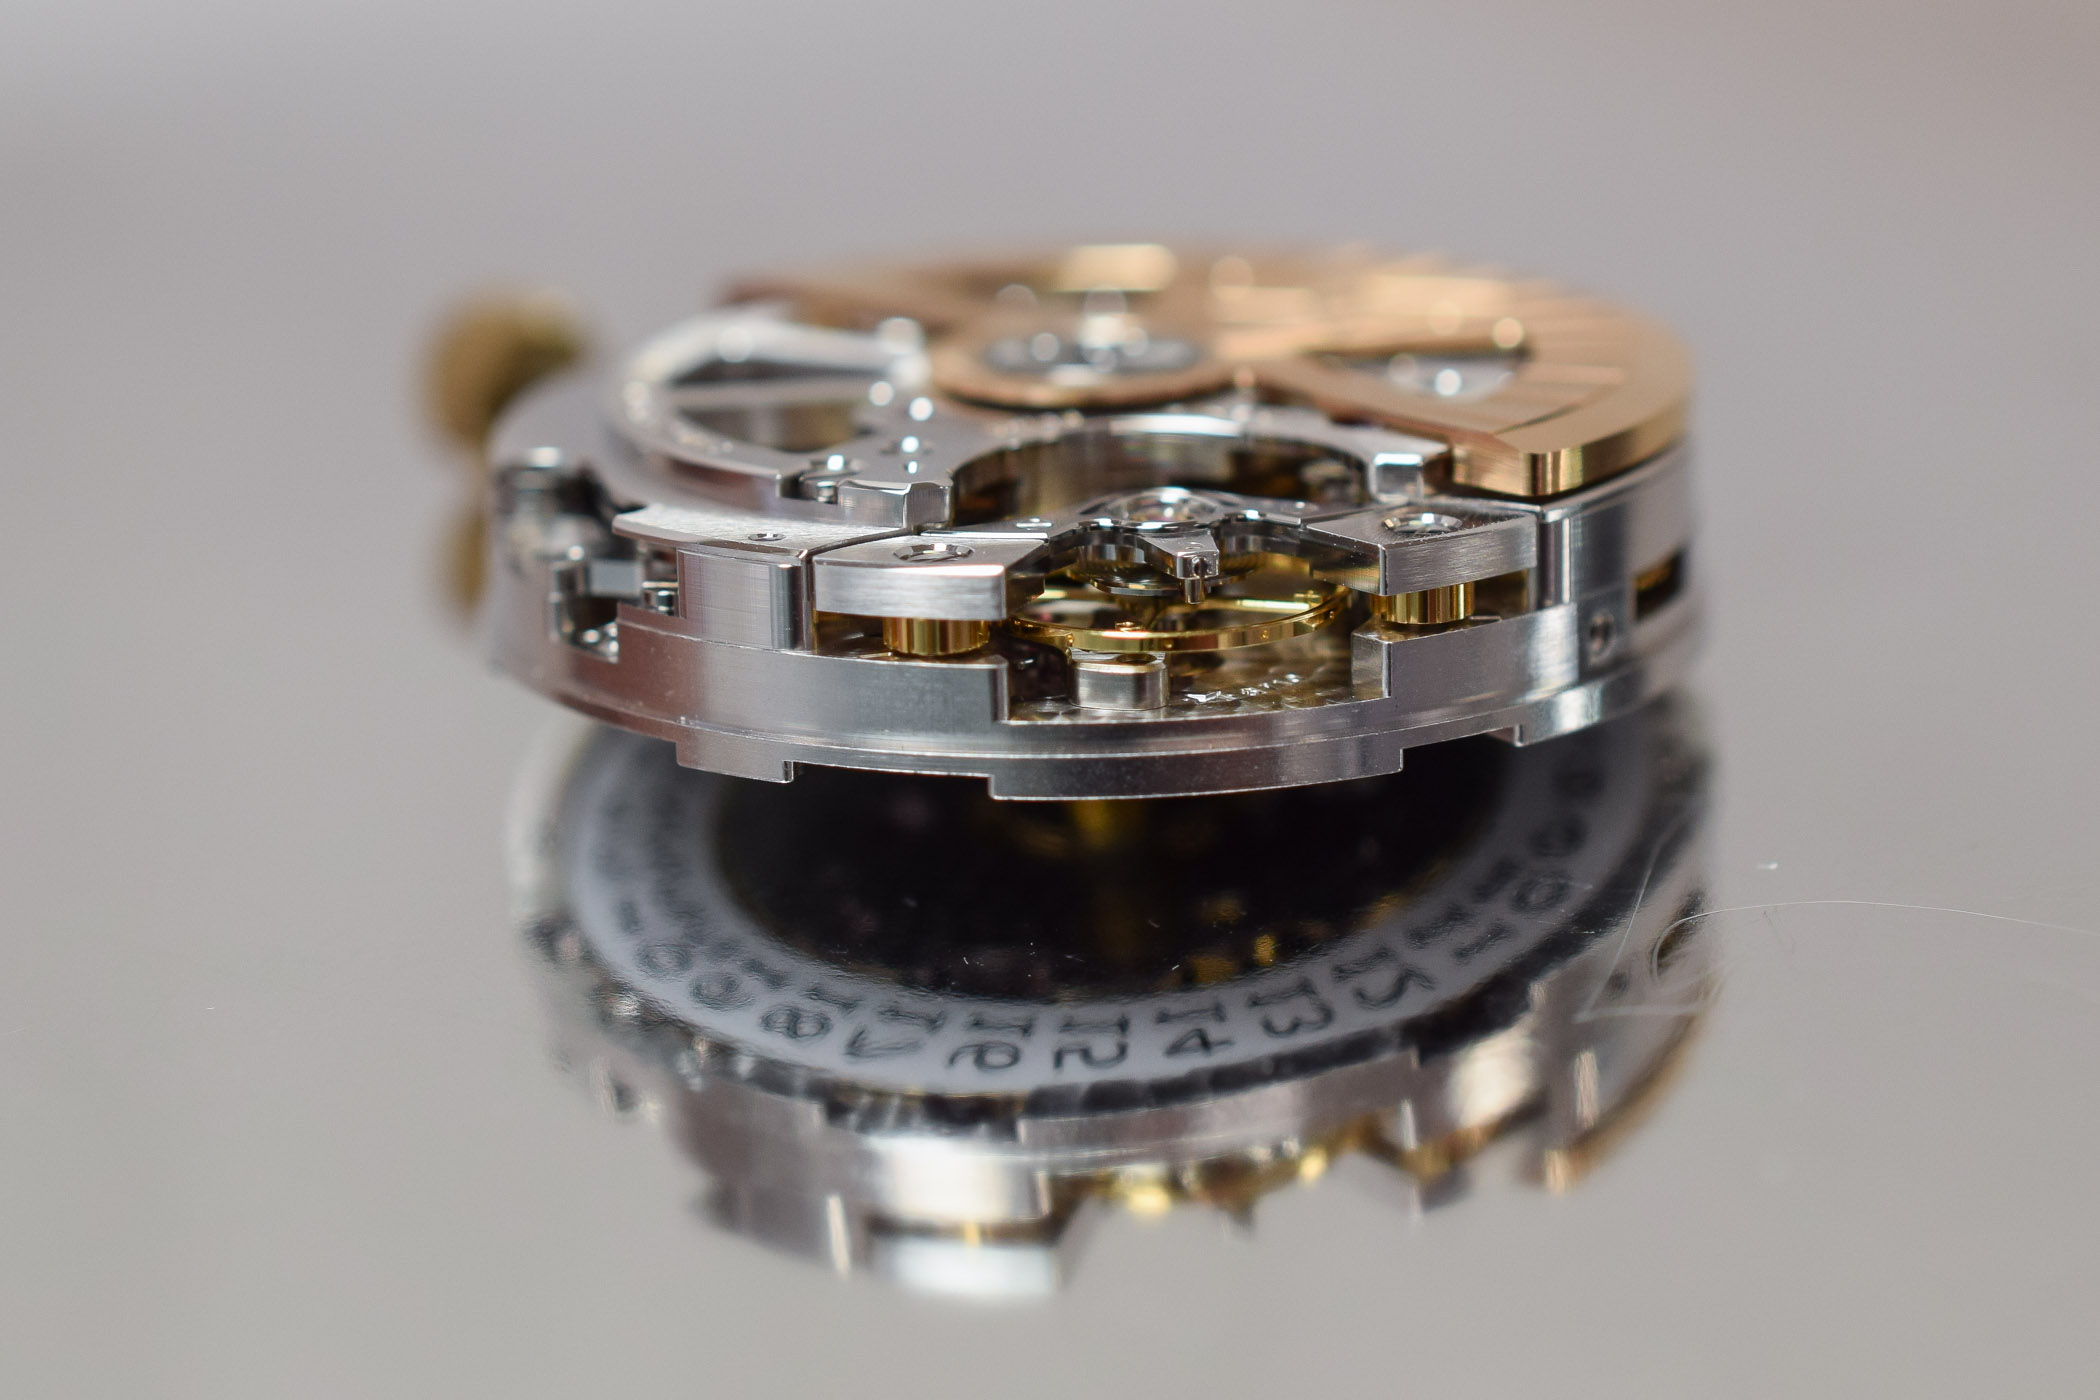 Vaucher integrated high-frequency chronograph Calibre Seed VMF 6710 - 3